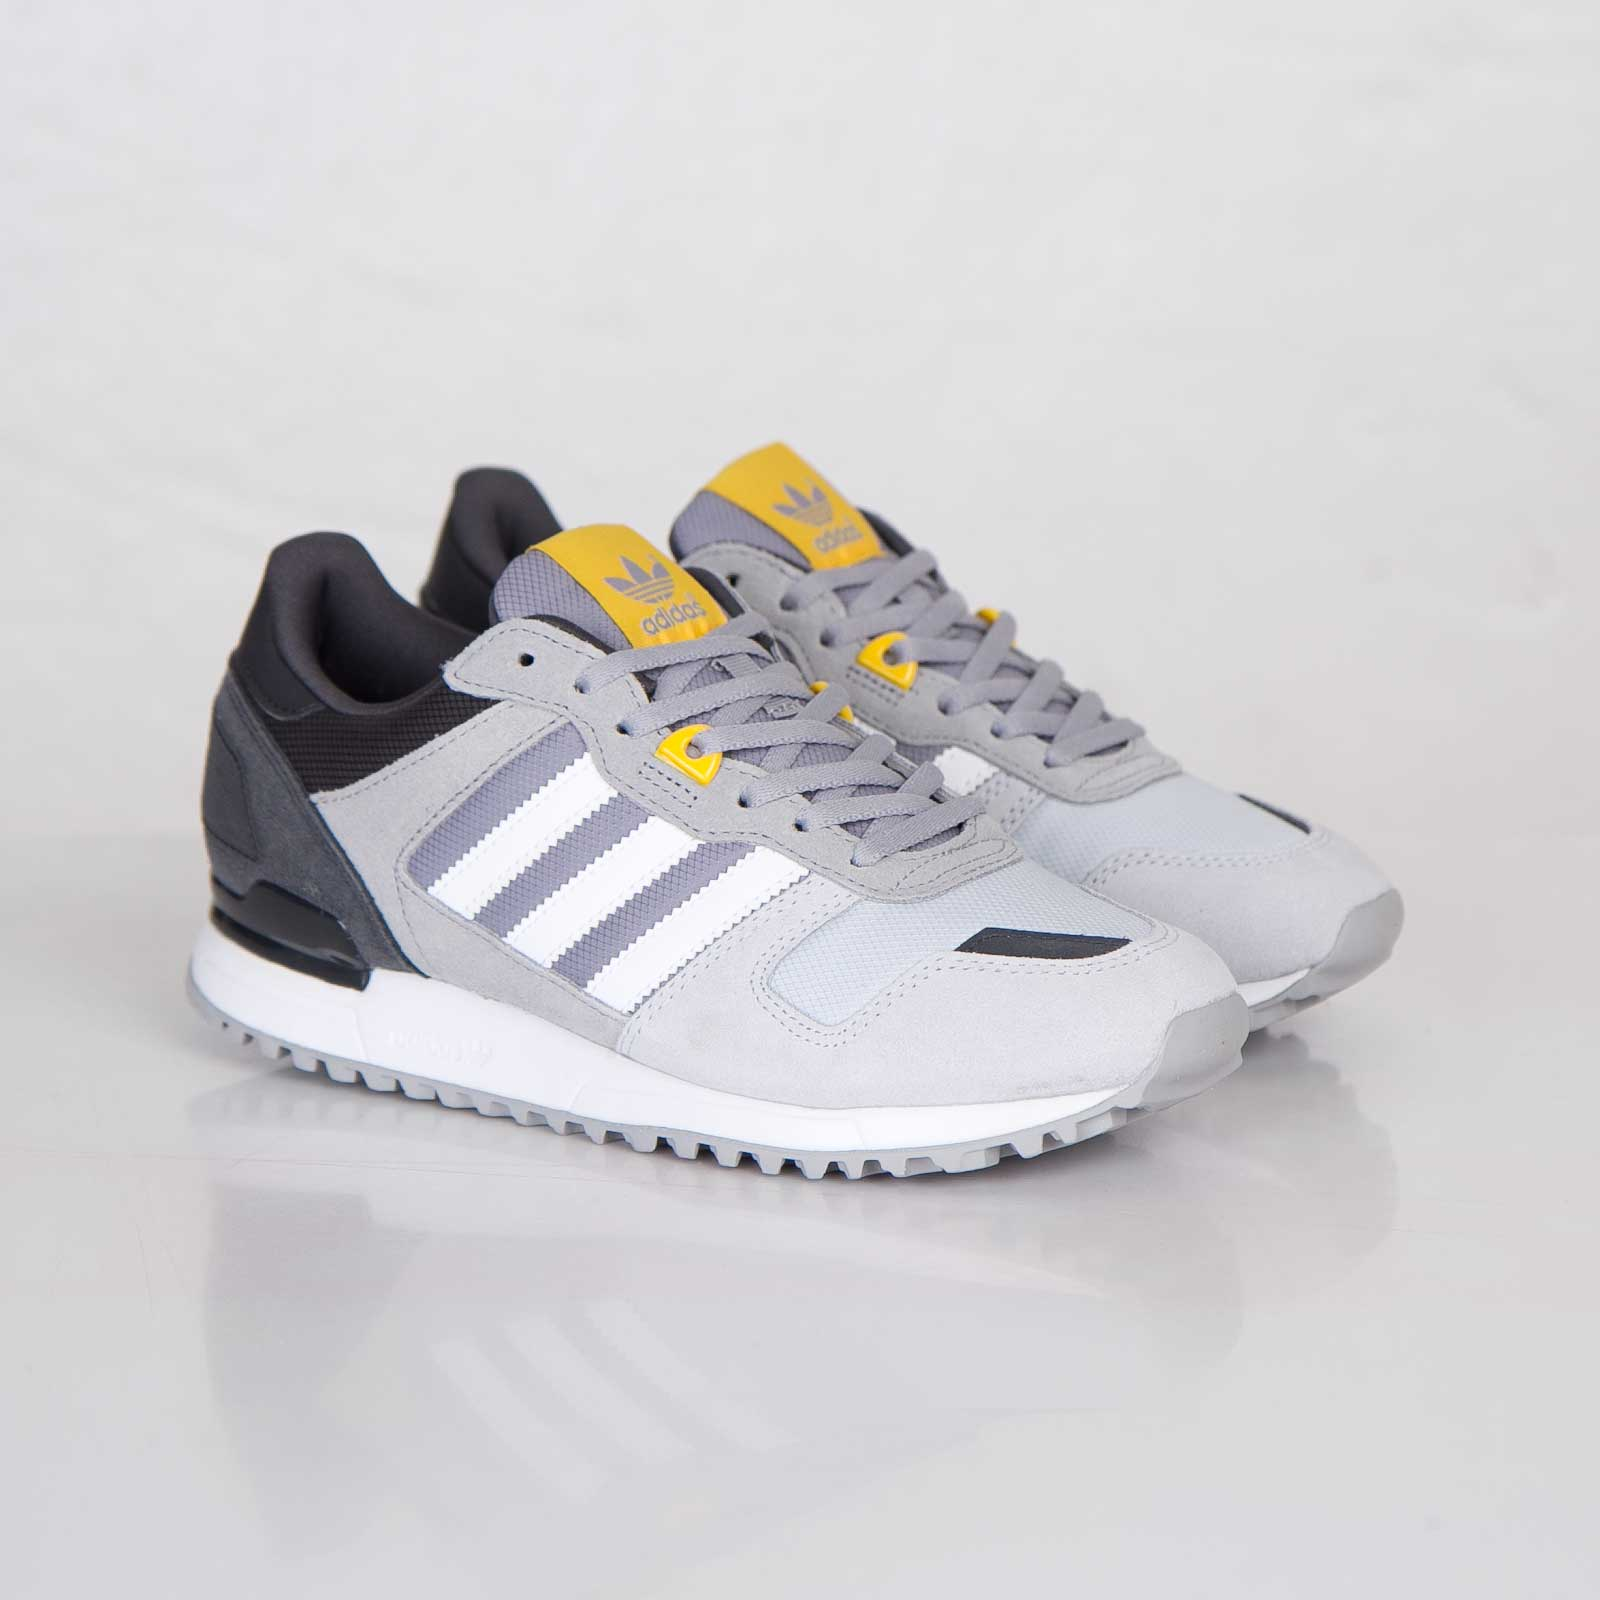 adidas Originals Zx 700 BlackYellowWhite | Footshop